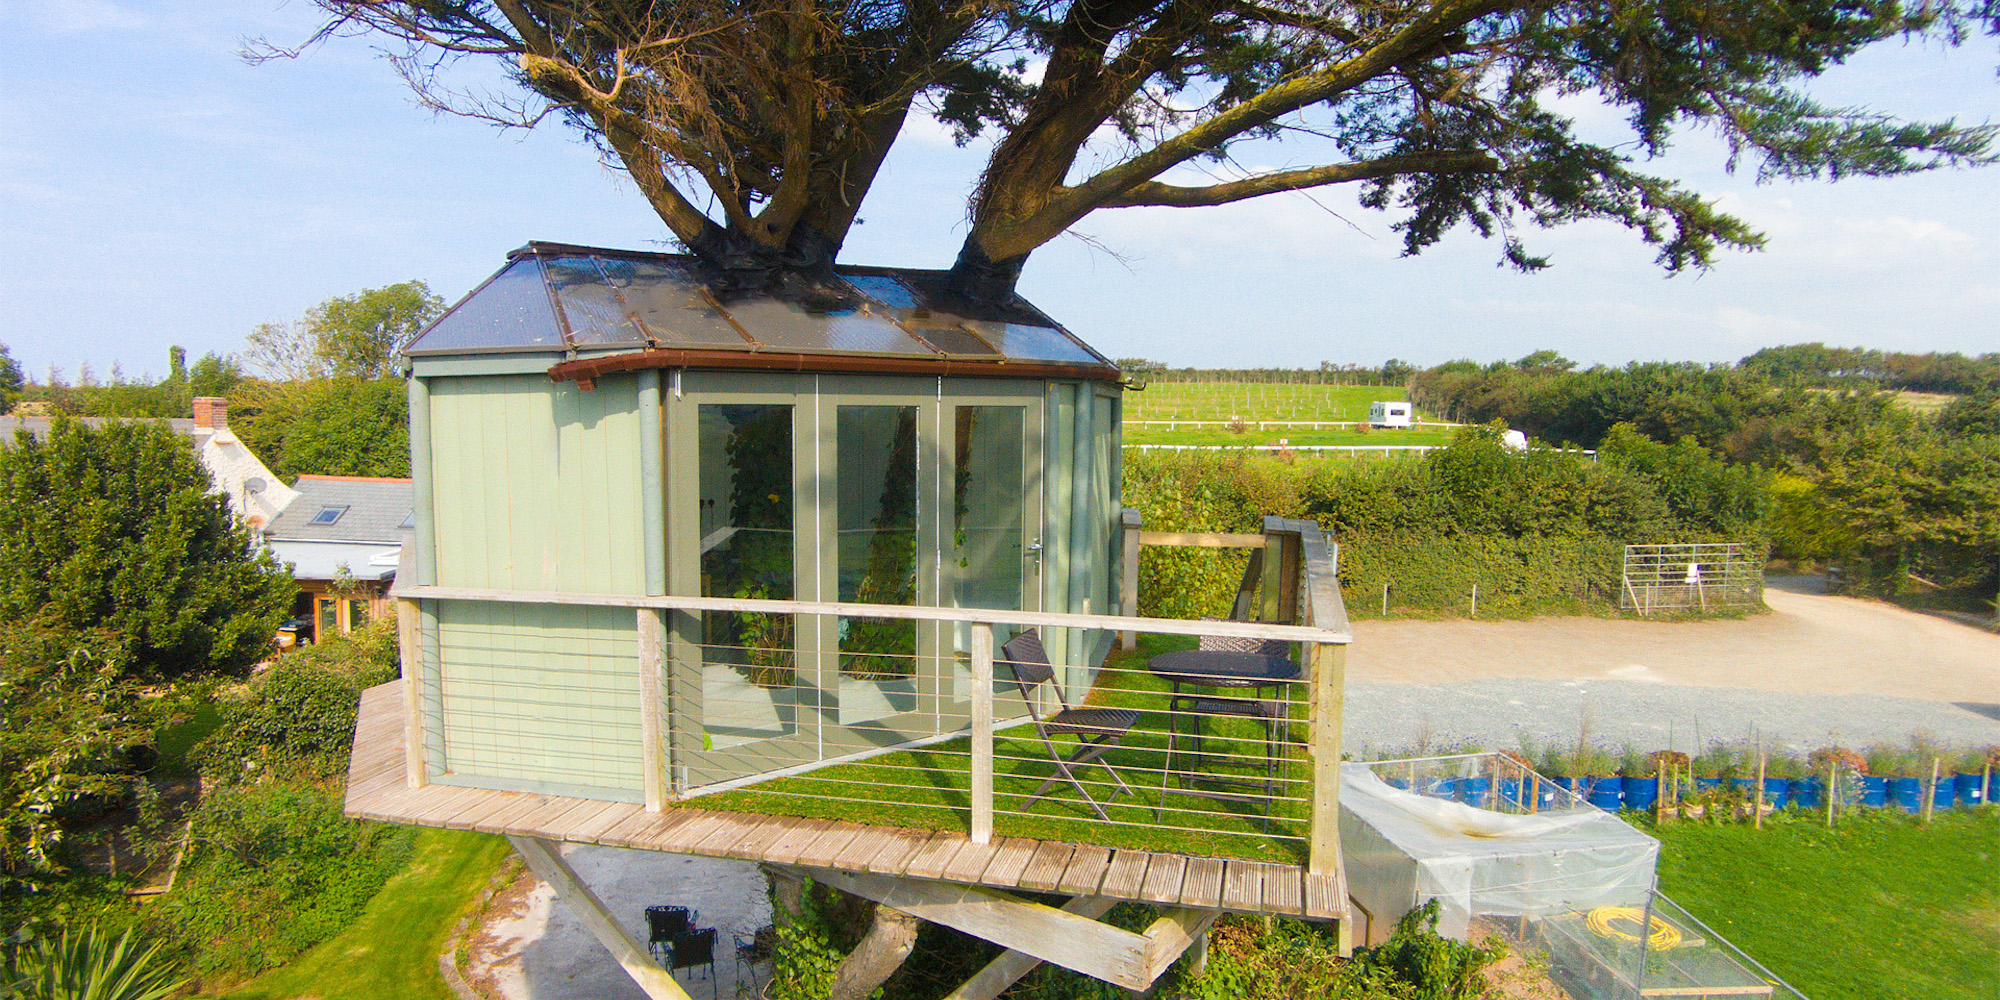 Ocean View Treehouse - Bude, North Cornwall